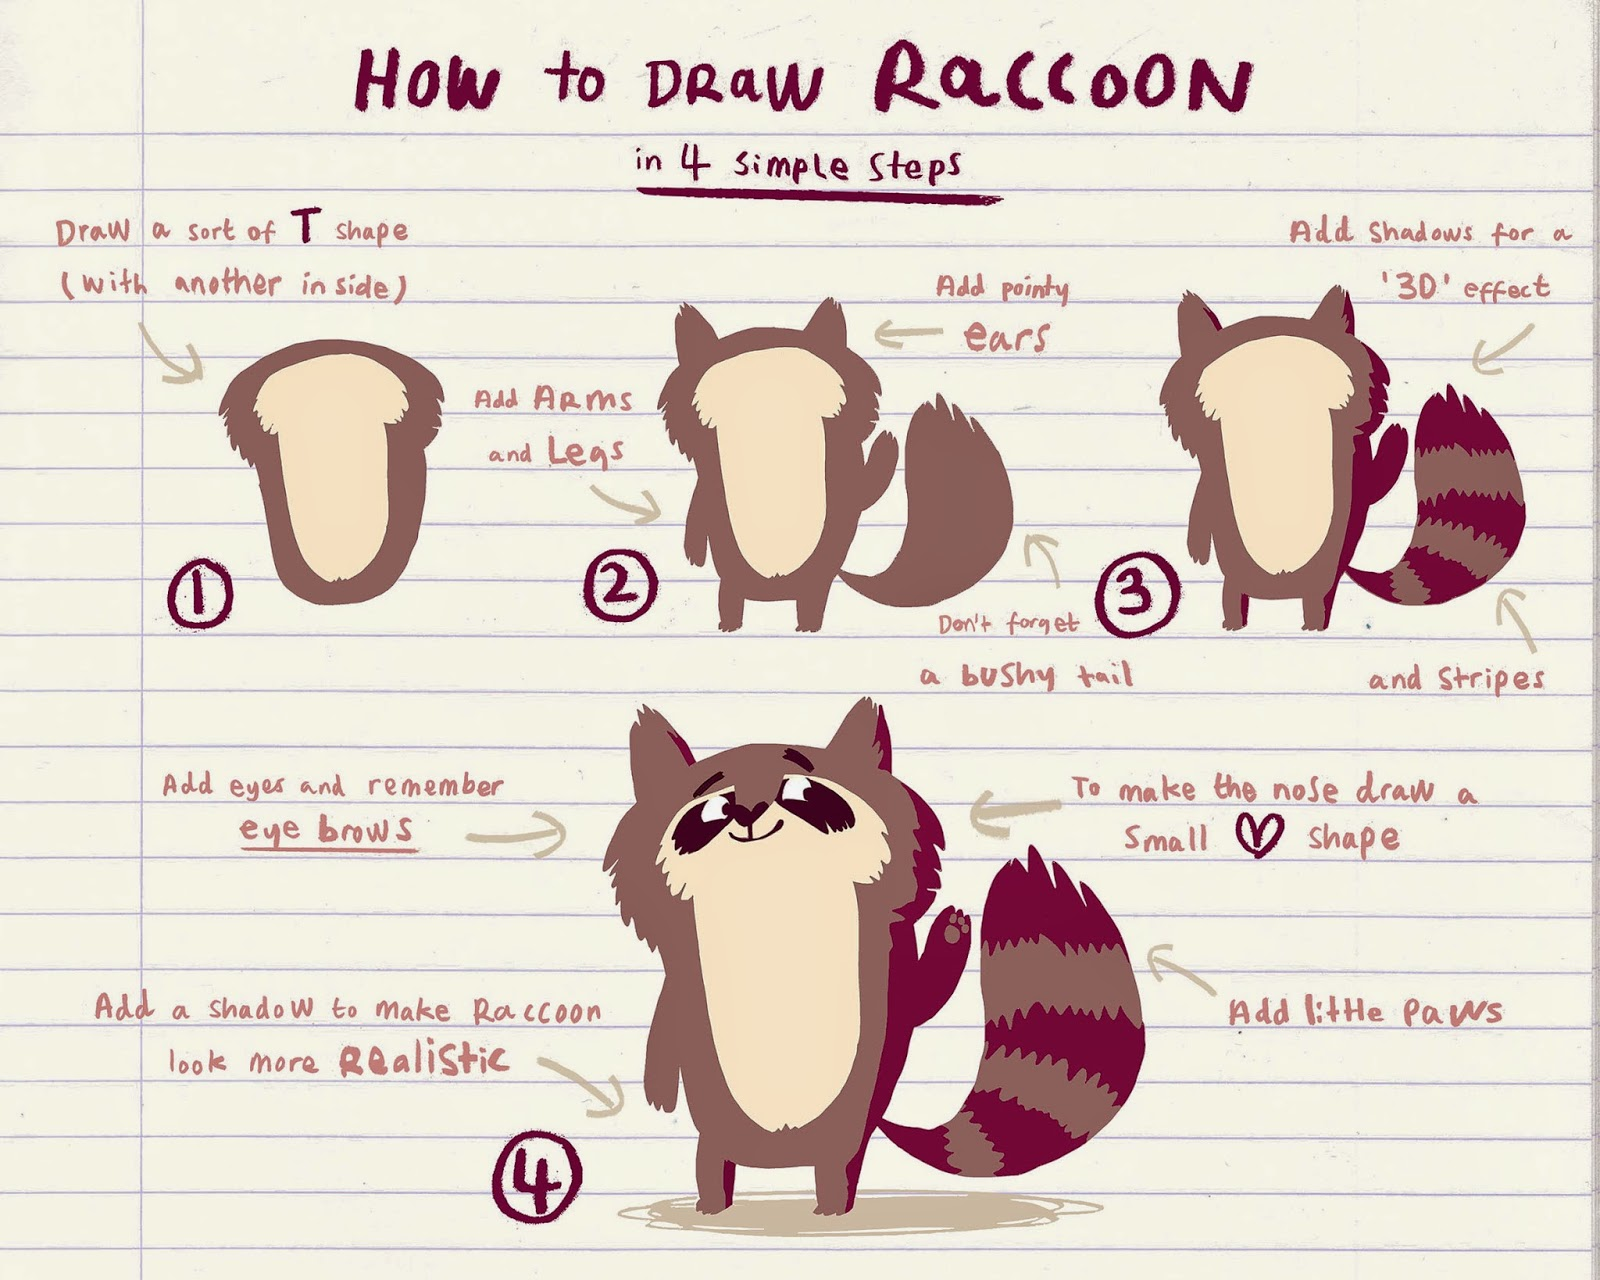 how to draw a raccoon with emily fox